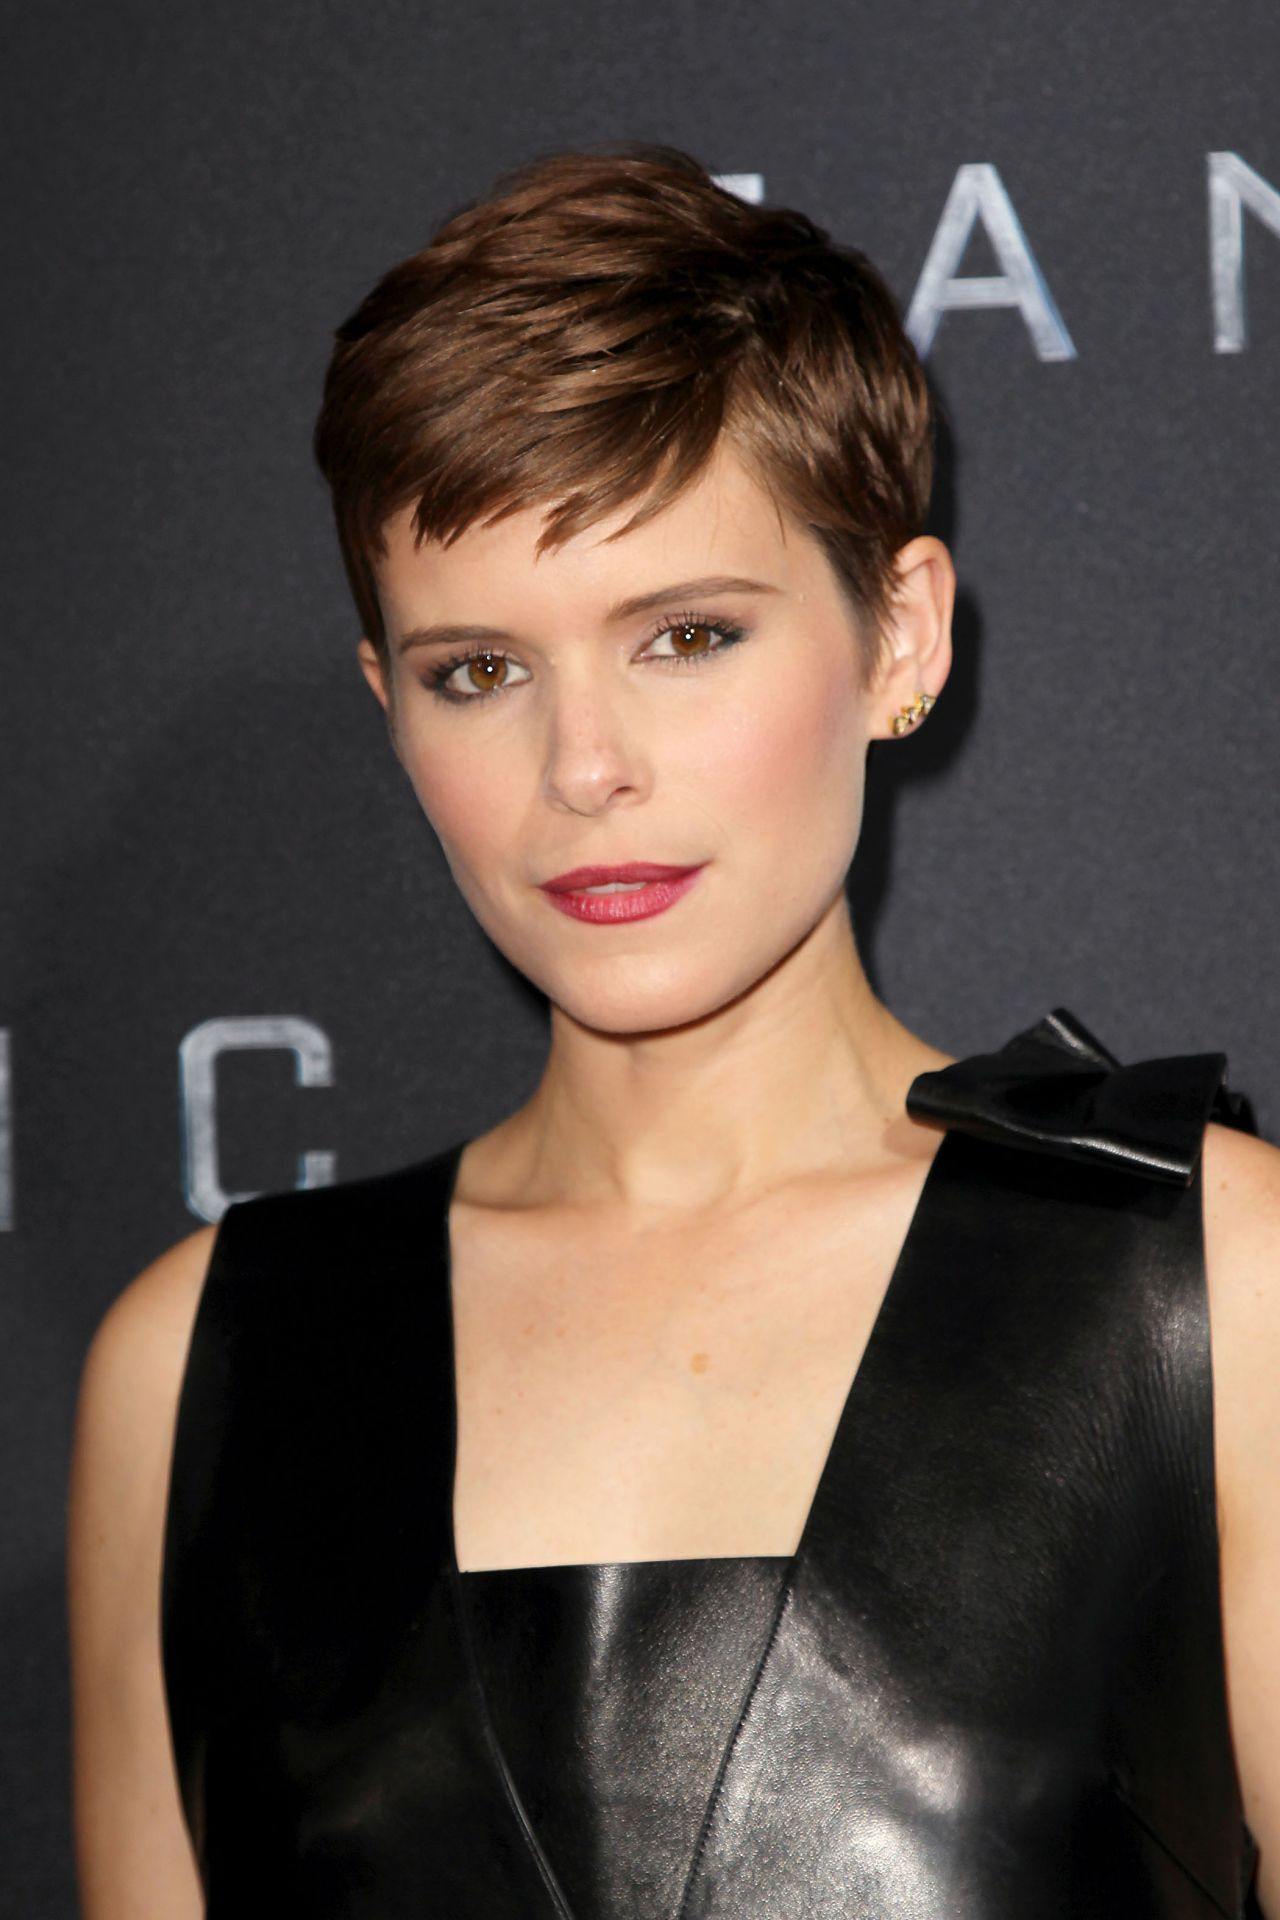 kate-mara-fantastic-four-premiere-in-new-york-city_14